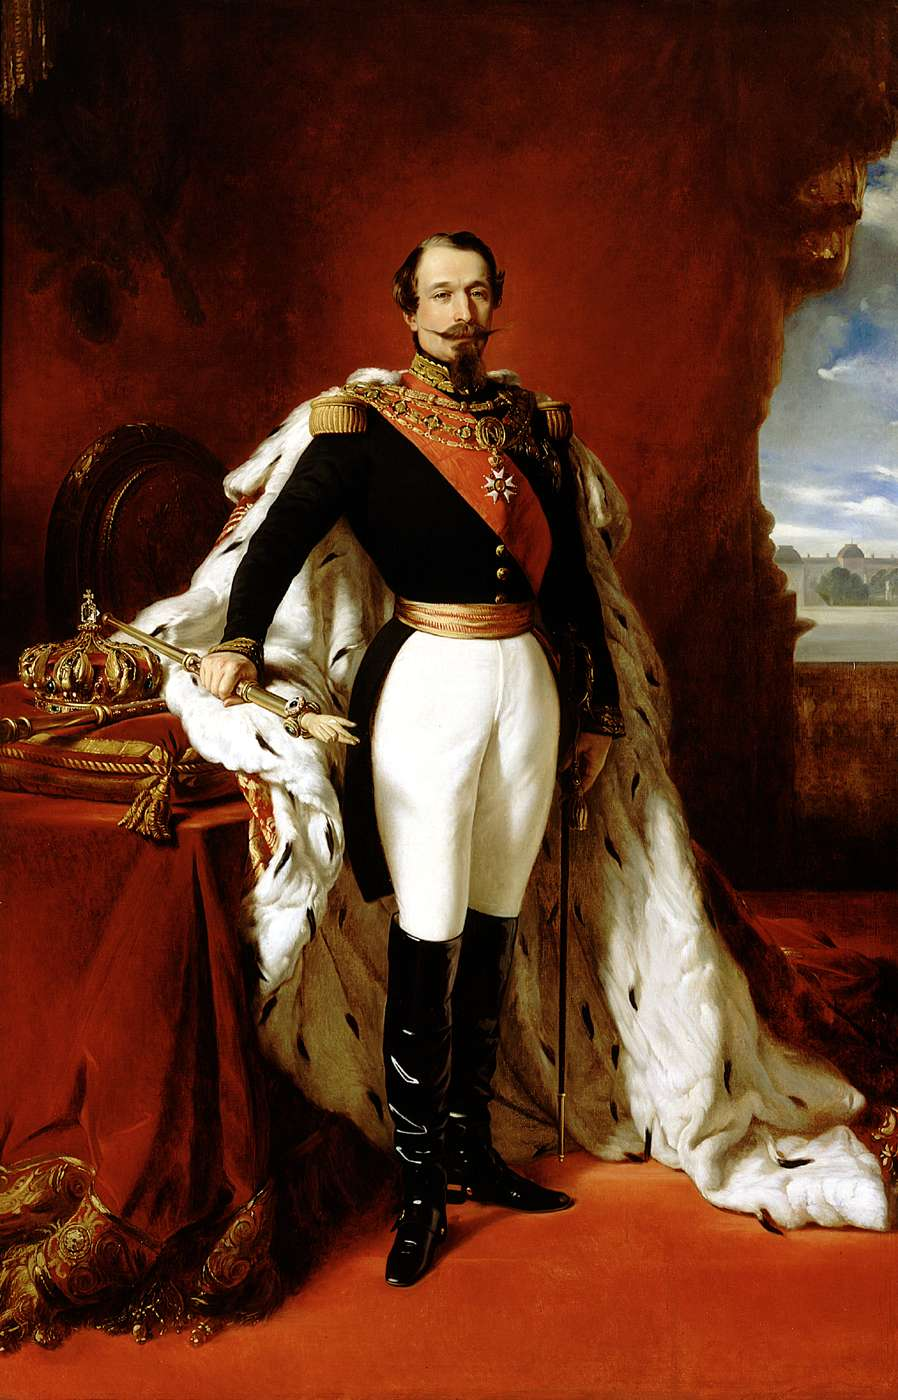 The Emperor Napoleon II in his pomp by Franz Xaver Winterhalter